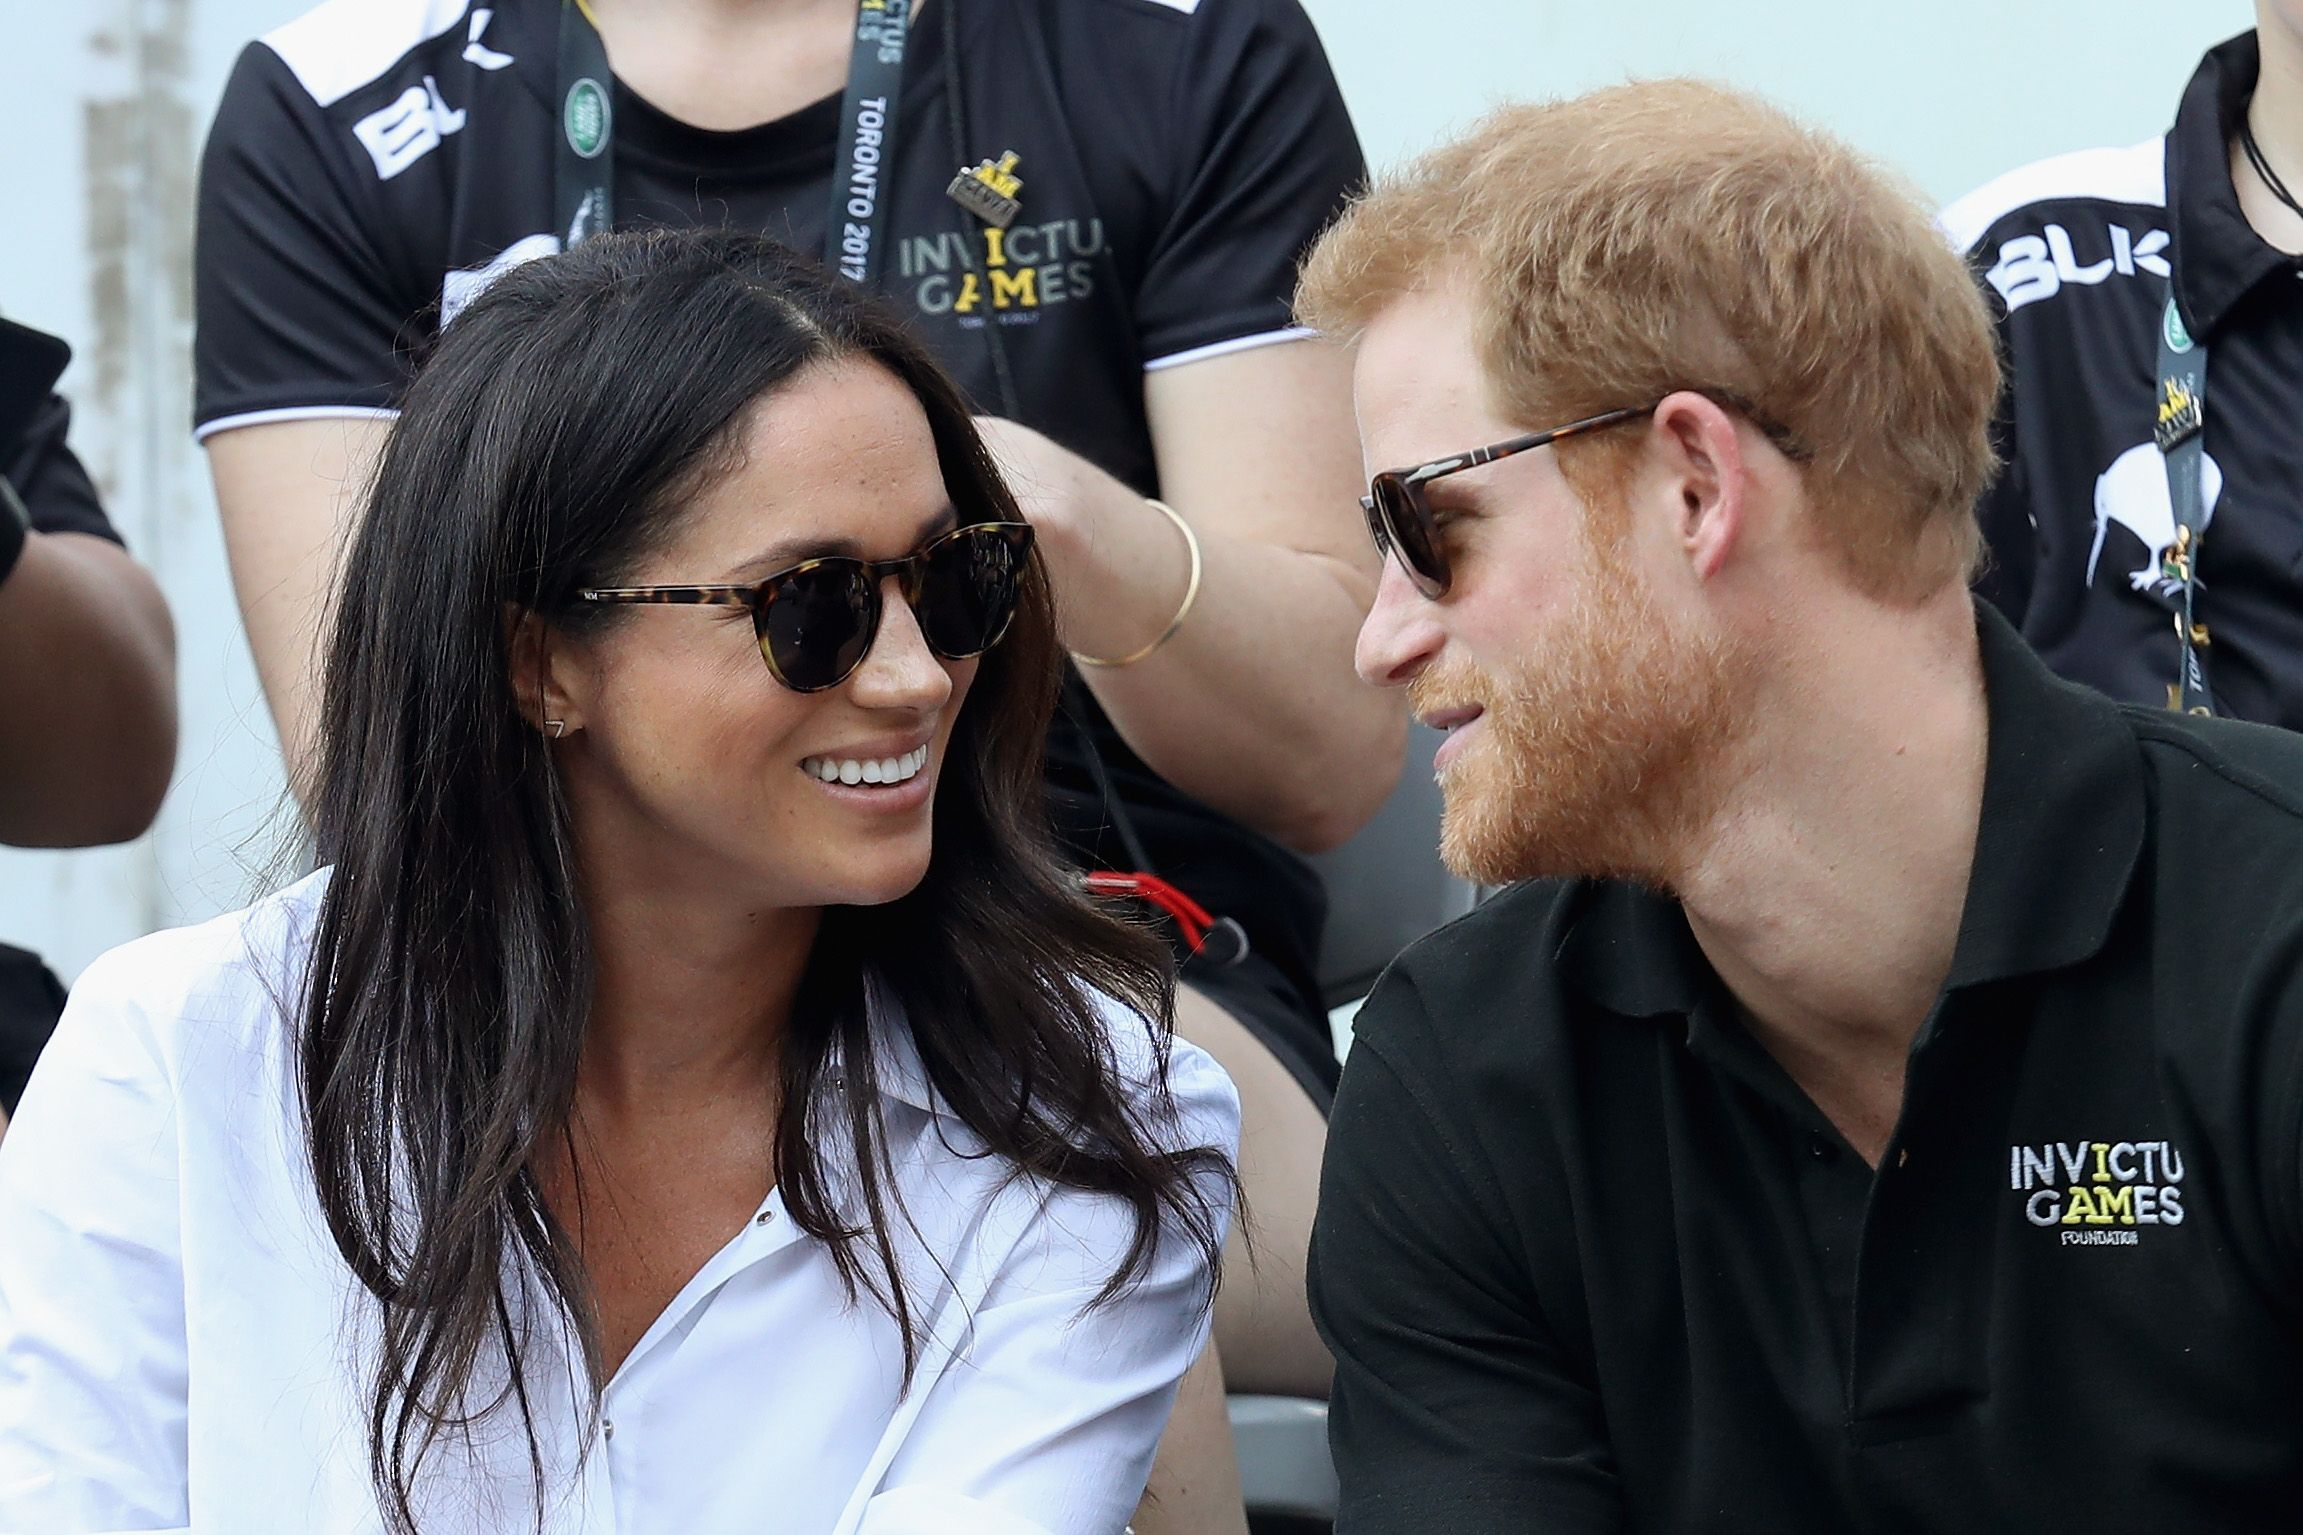 Prince Harry and Meghan Markle during the Invictus Games 2017 at Nathan Philips Square on September 25, 2017 in Toronto, Canada. | Photo: Getty Images.